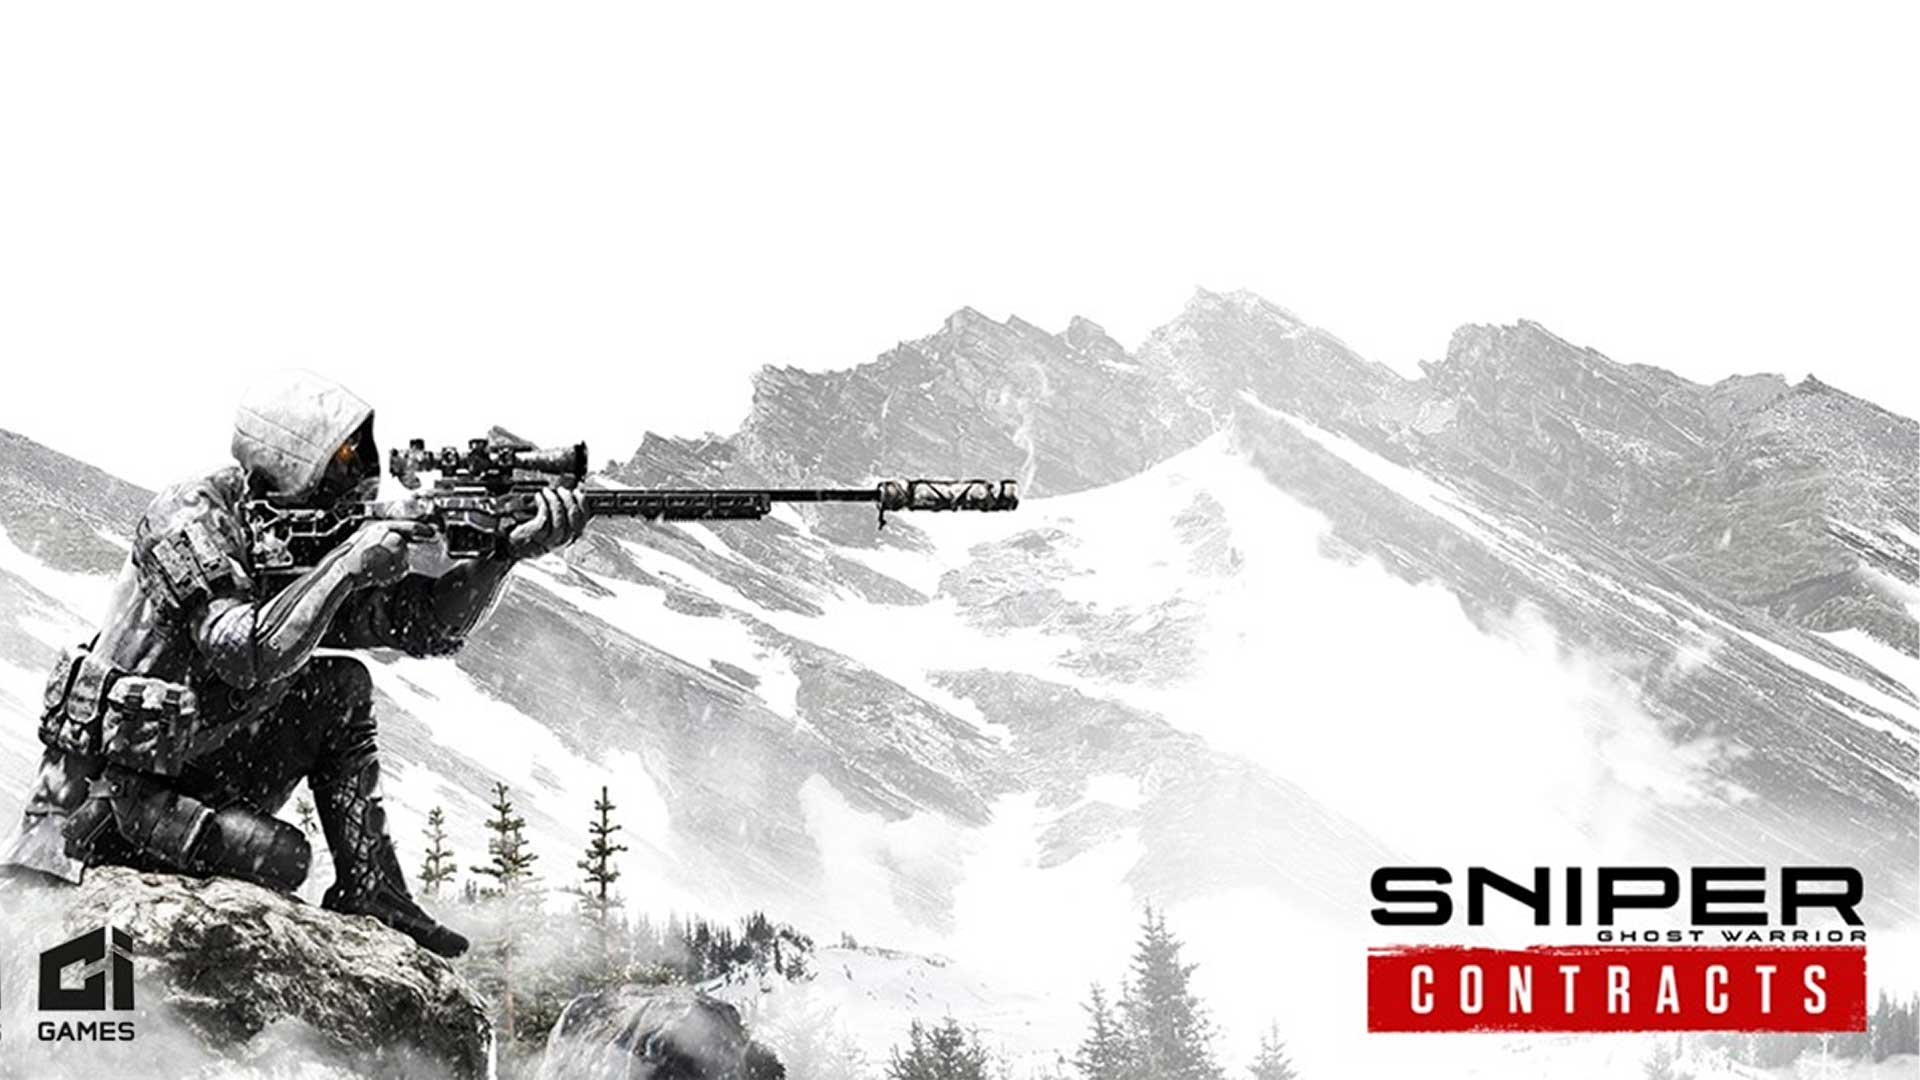 sniper ghost warriors contracts